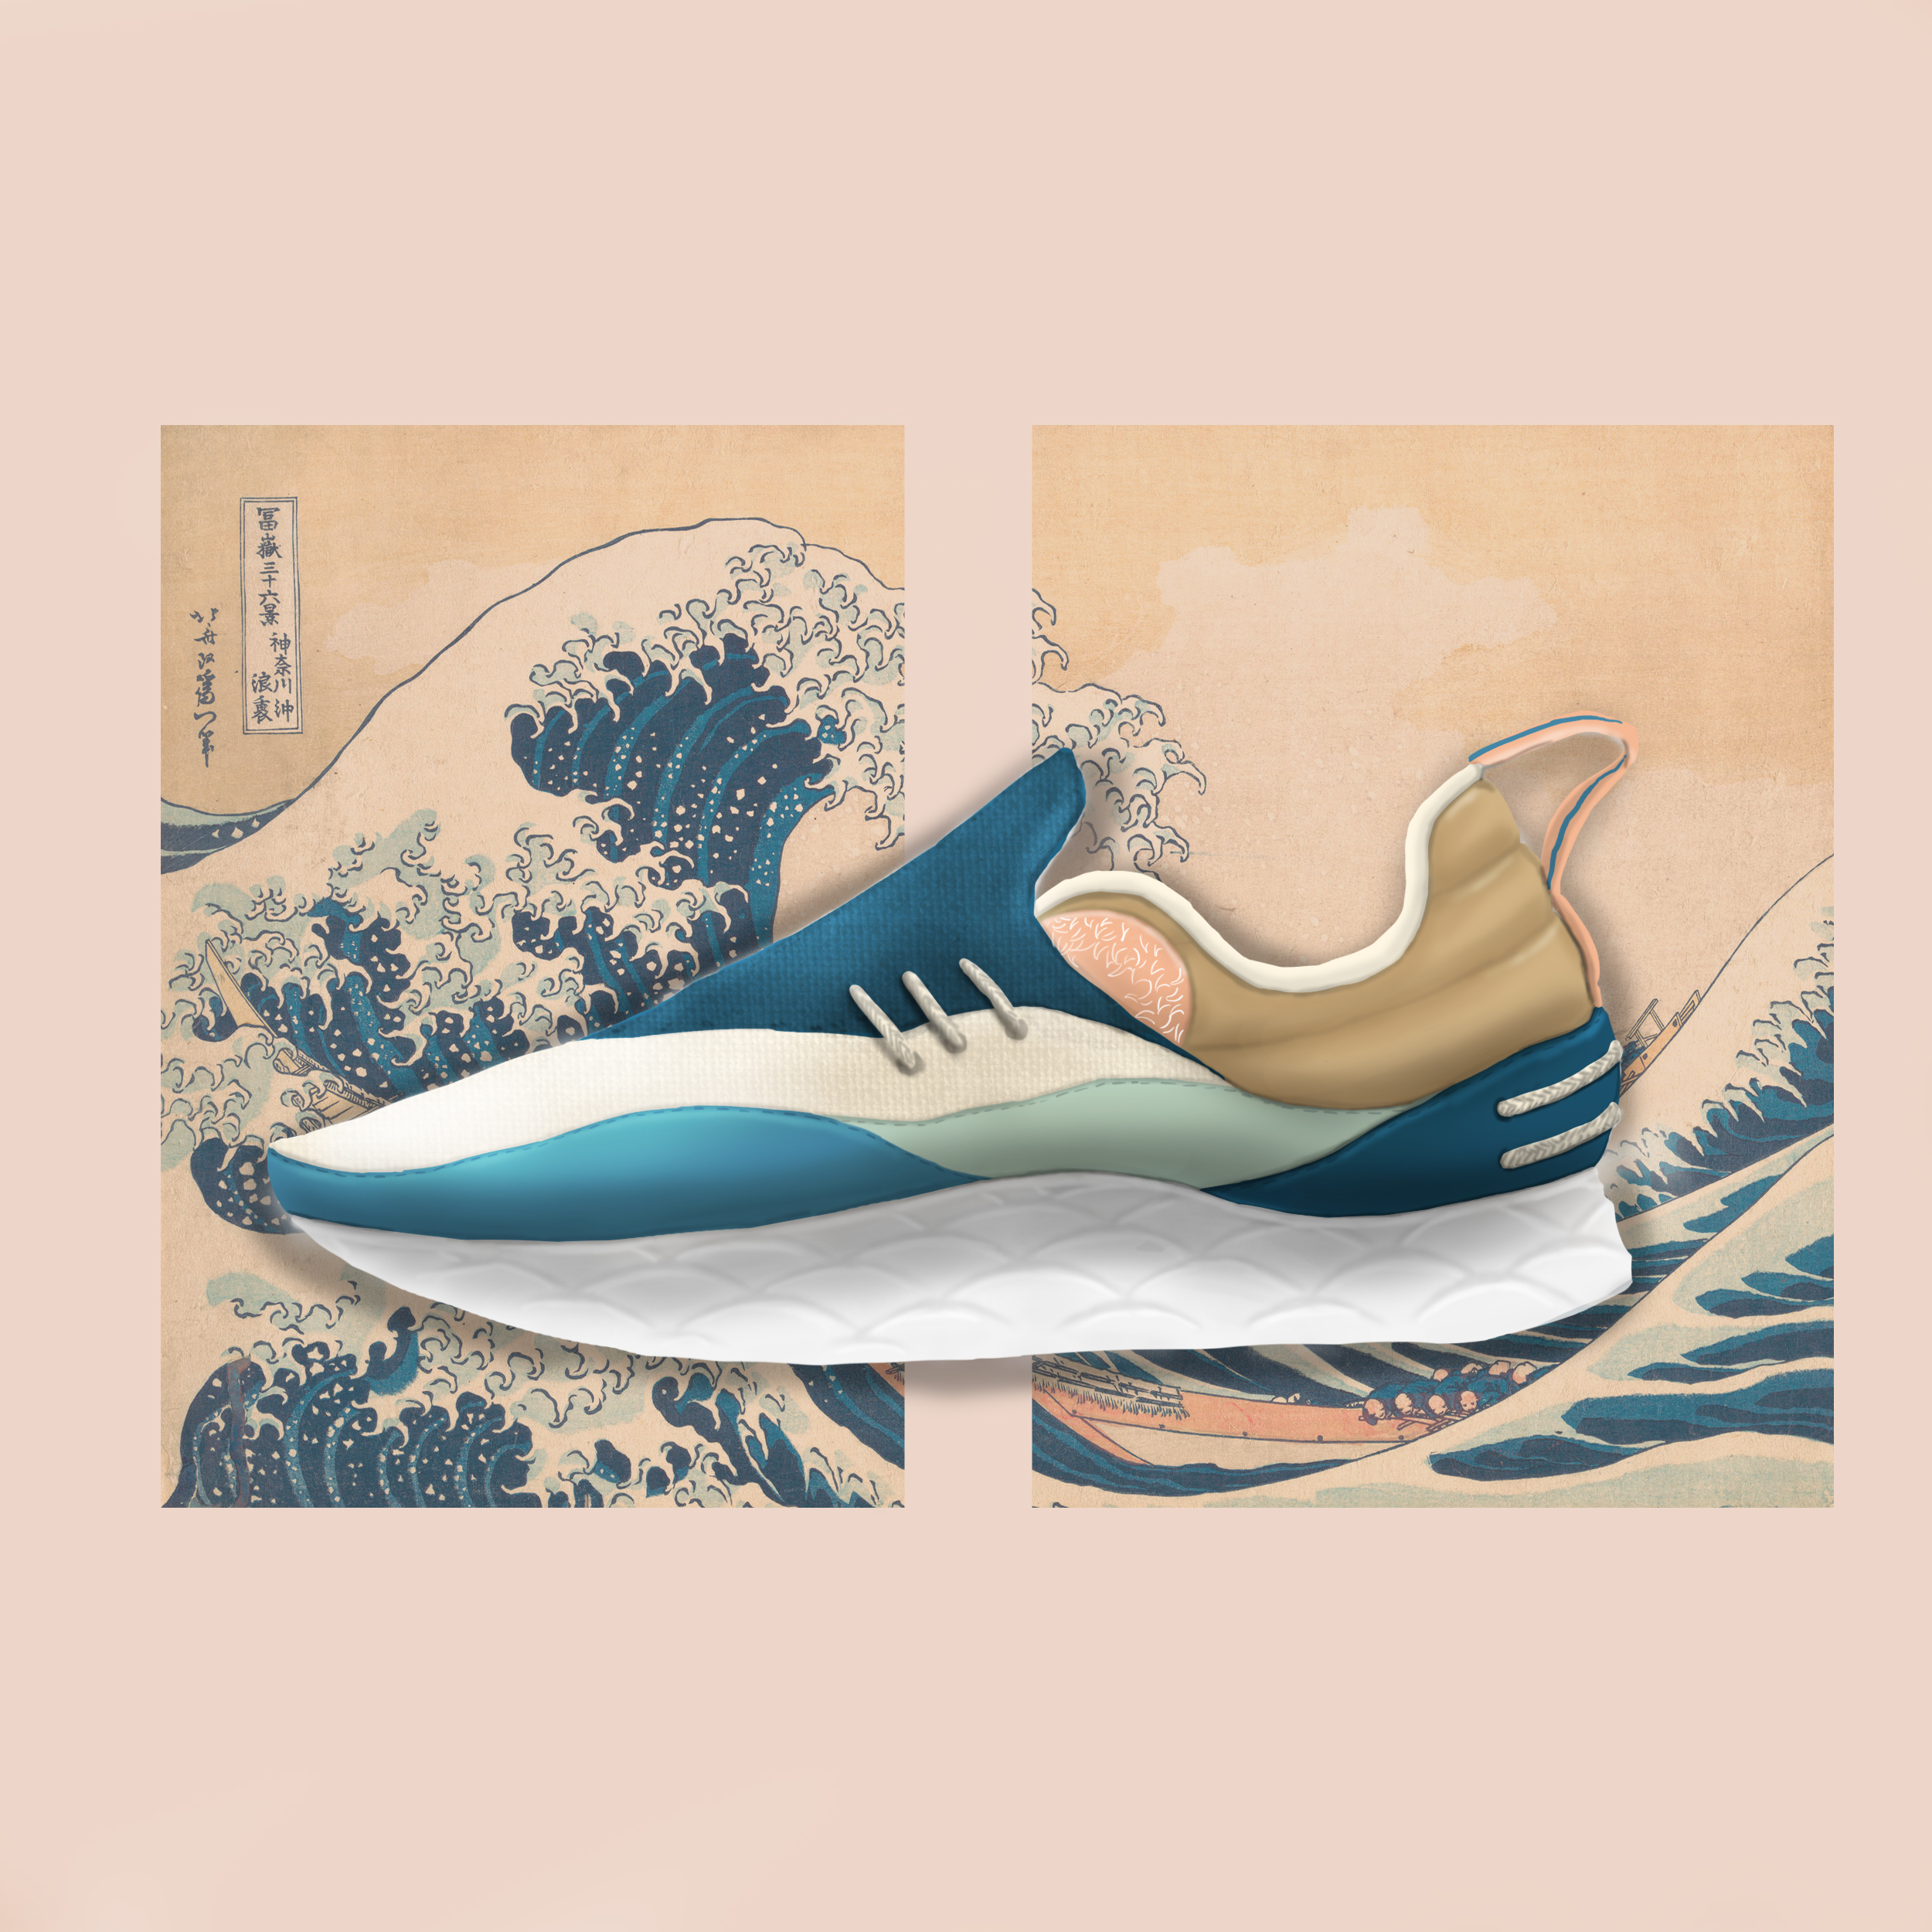 ukiyo-e shoe wave 2.JPG